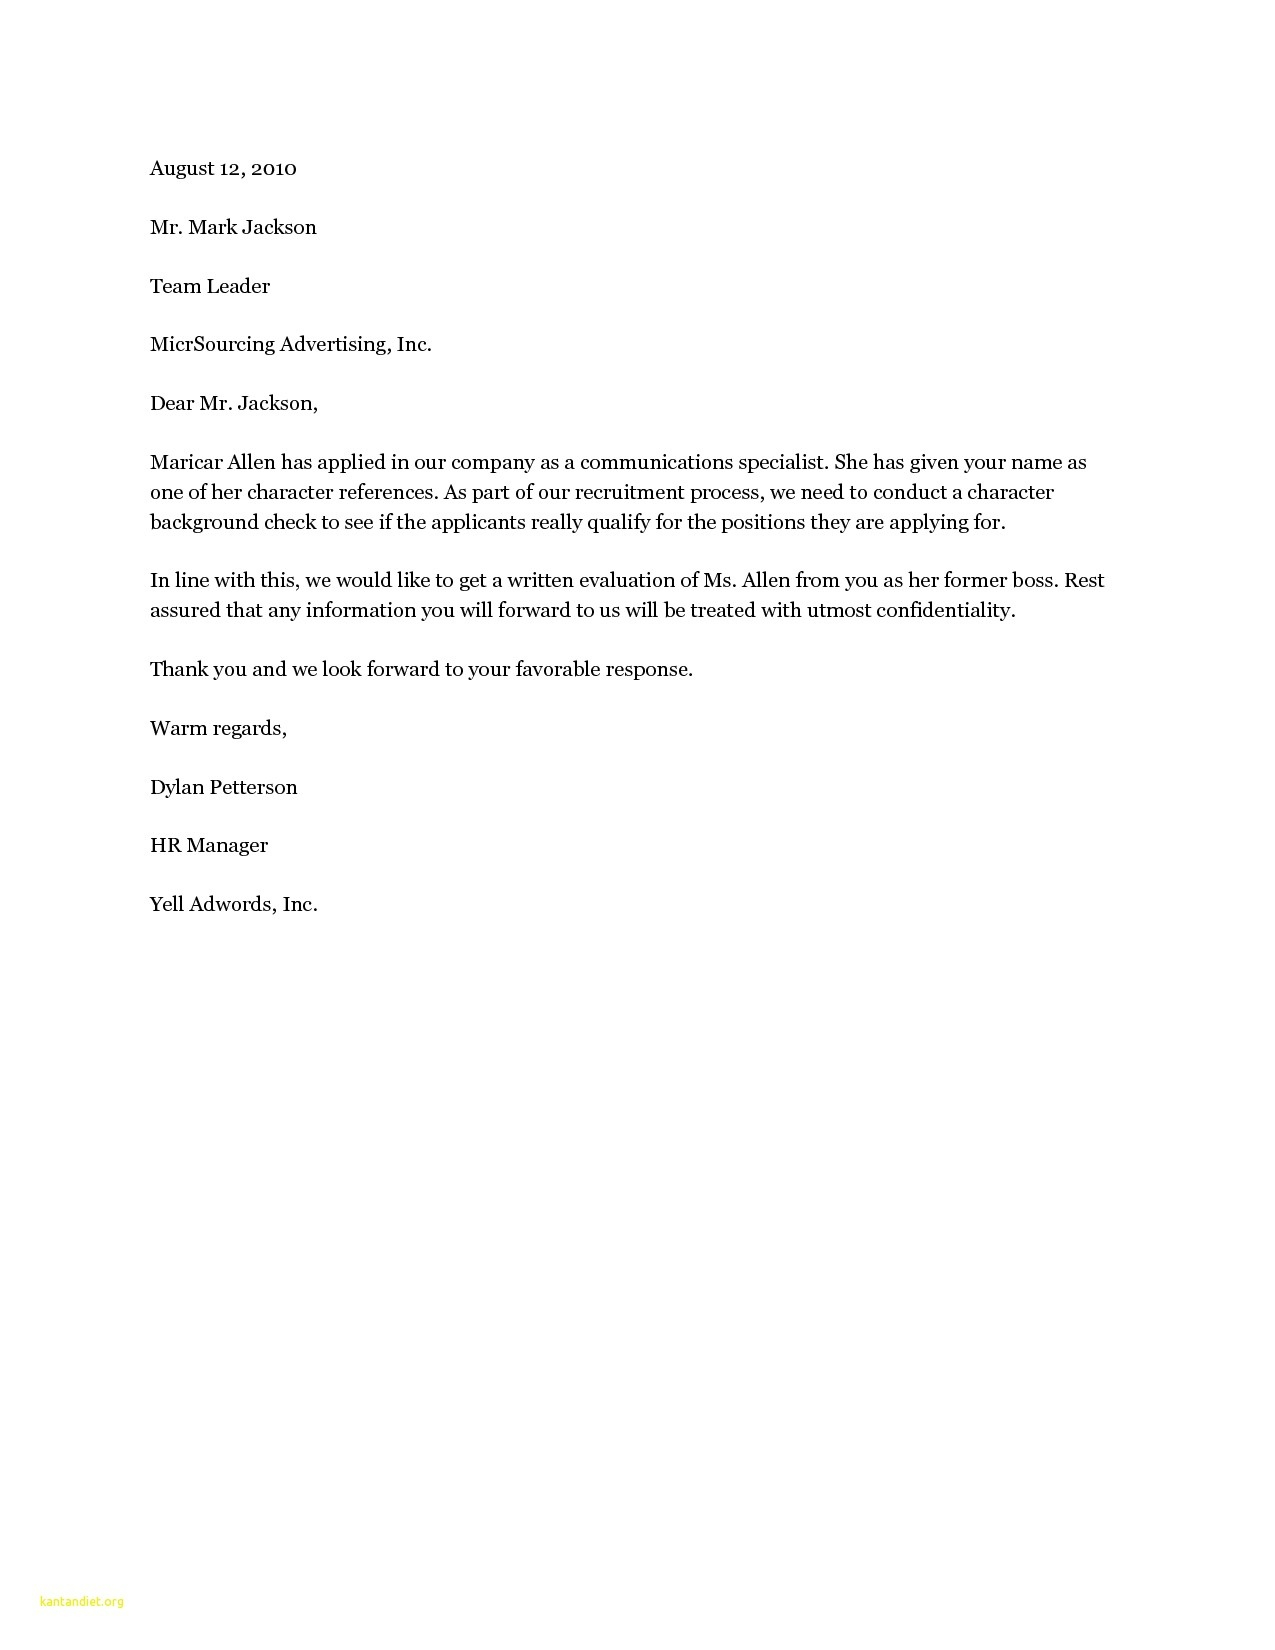 Personal Recommendation Letter Template - Dear Hiring Manager Cover Letter Sample 19 Cover Letter Template